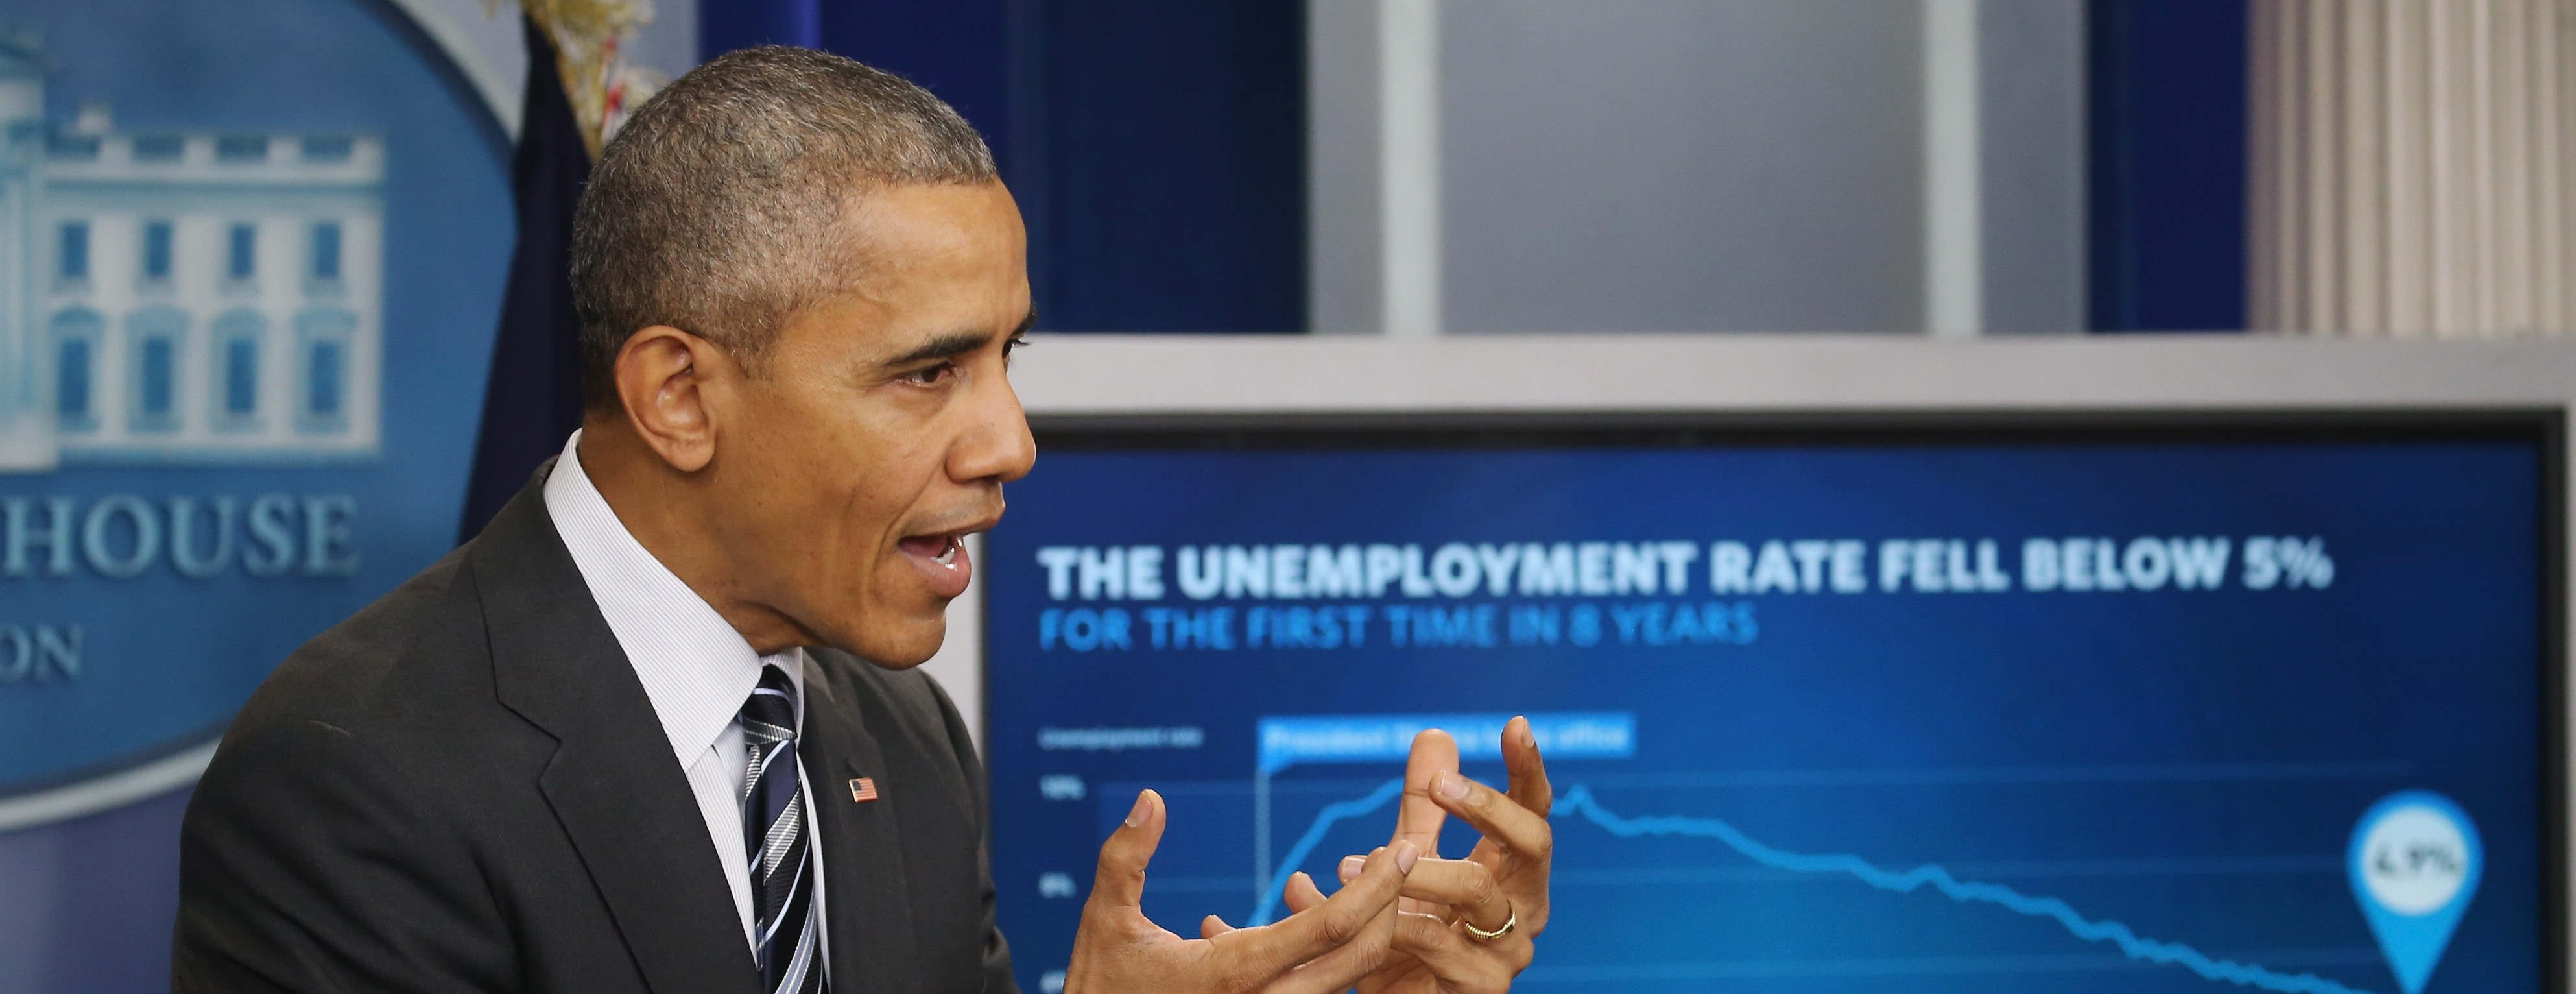 President Obama Speaks On The Economy In Brady Press Briefing Room